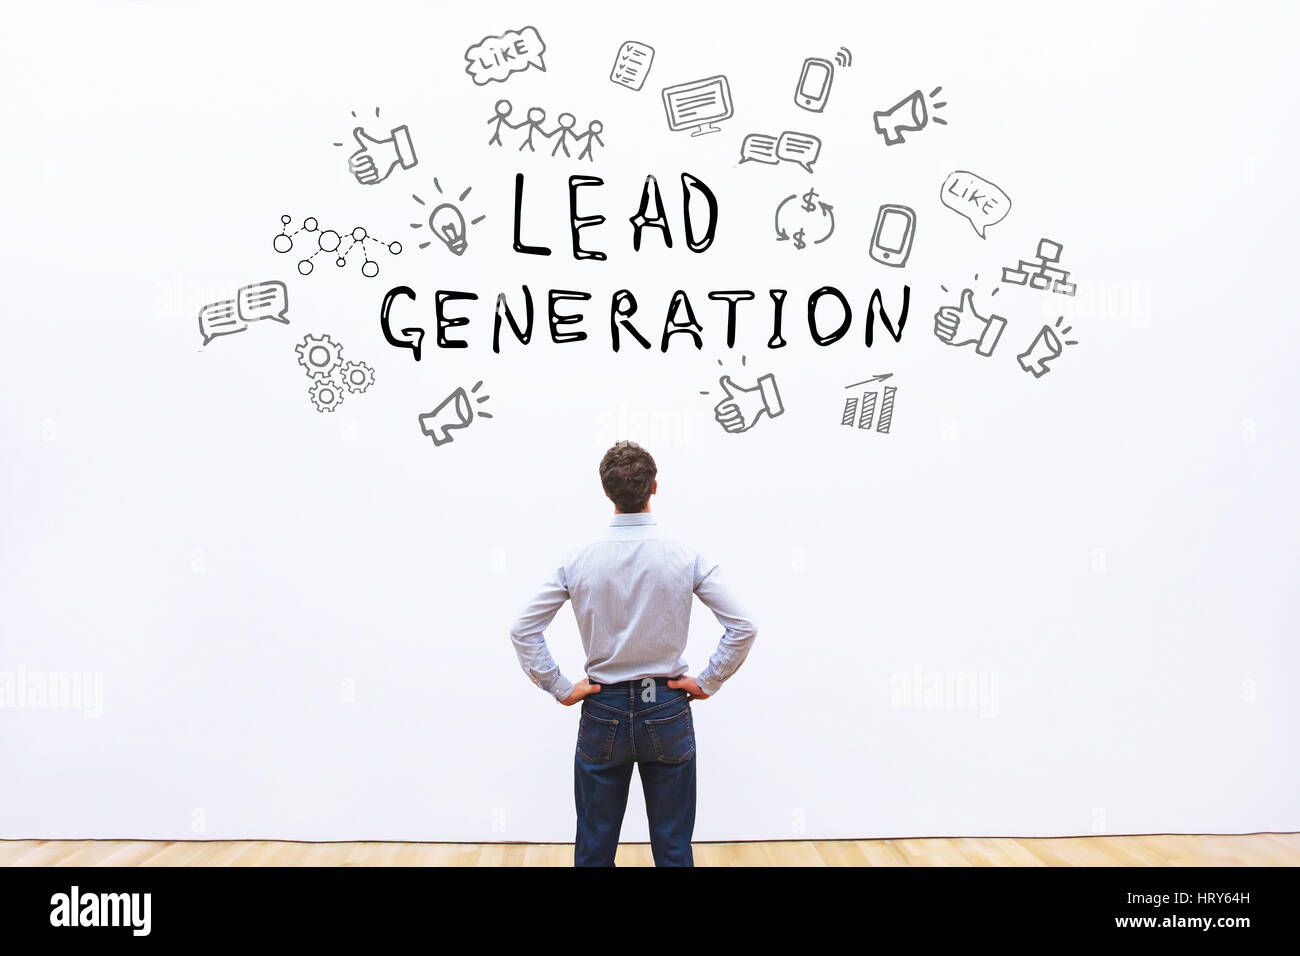 lead generation concept - Stock Image